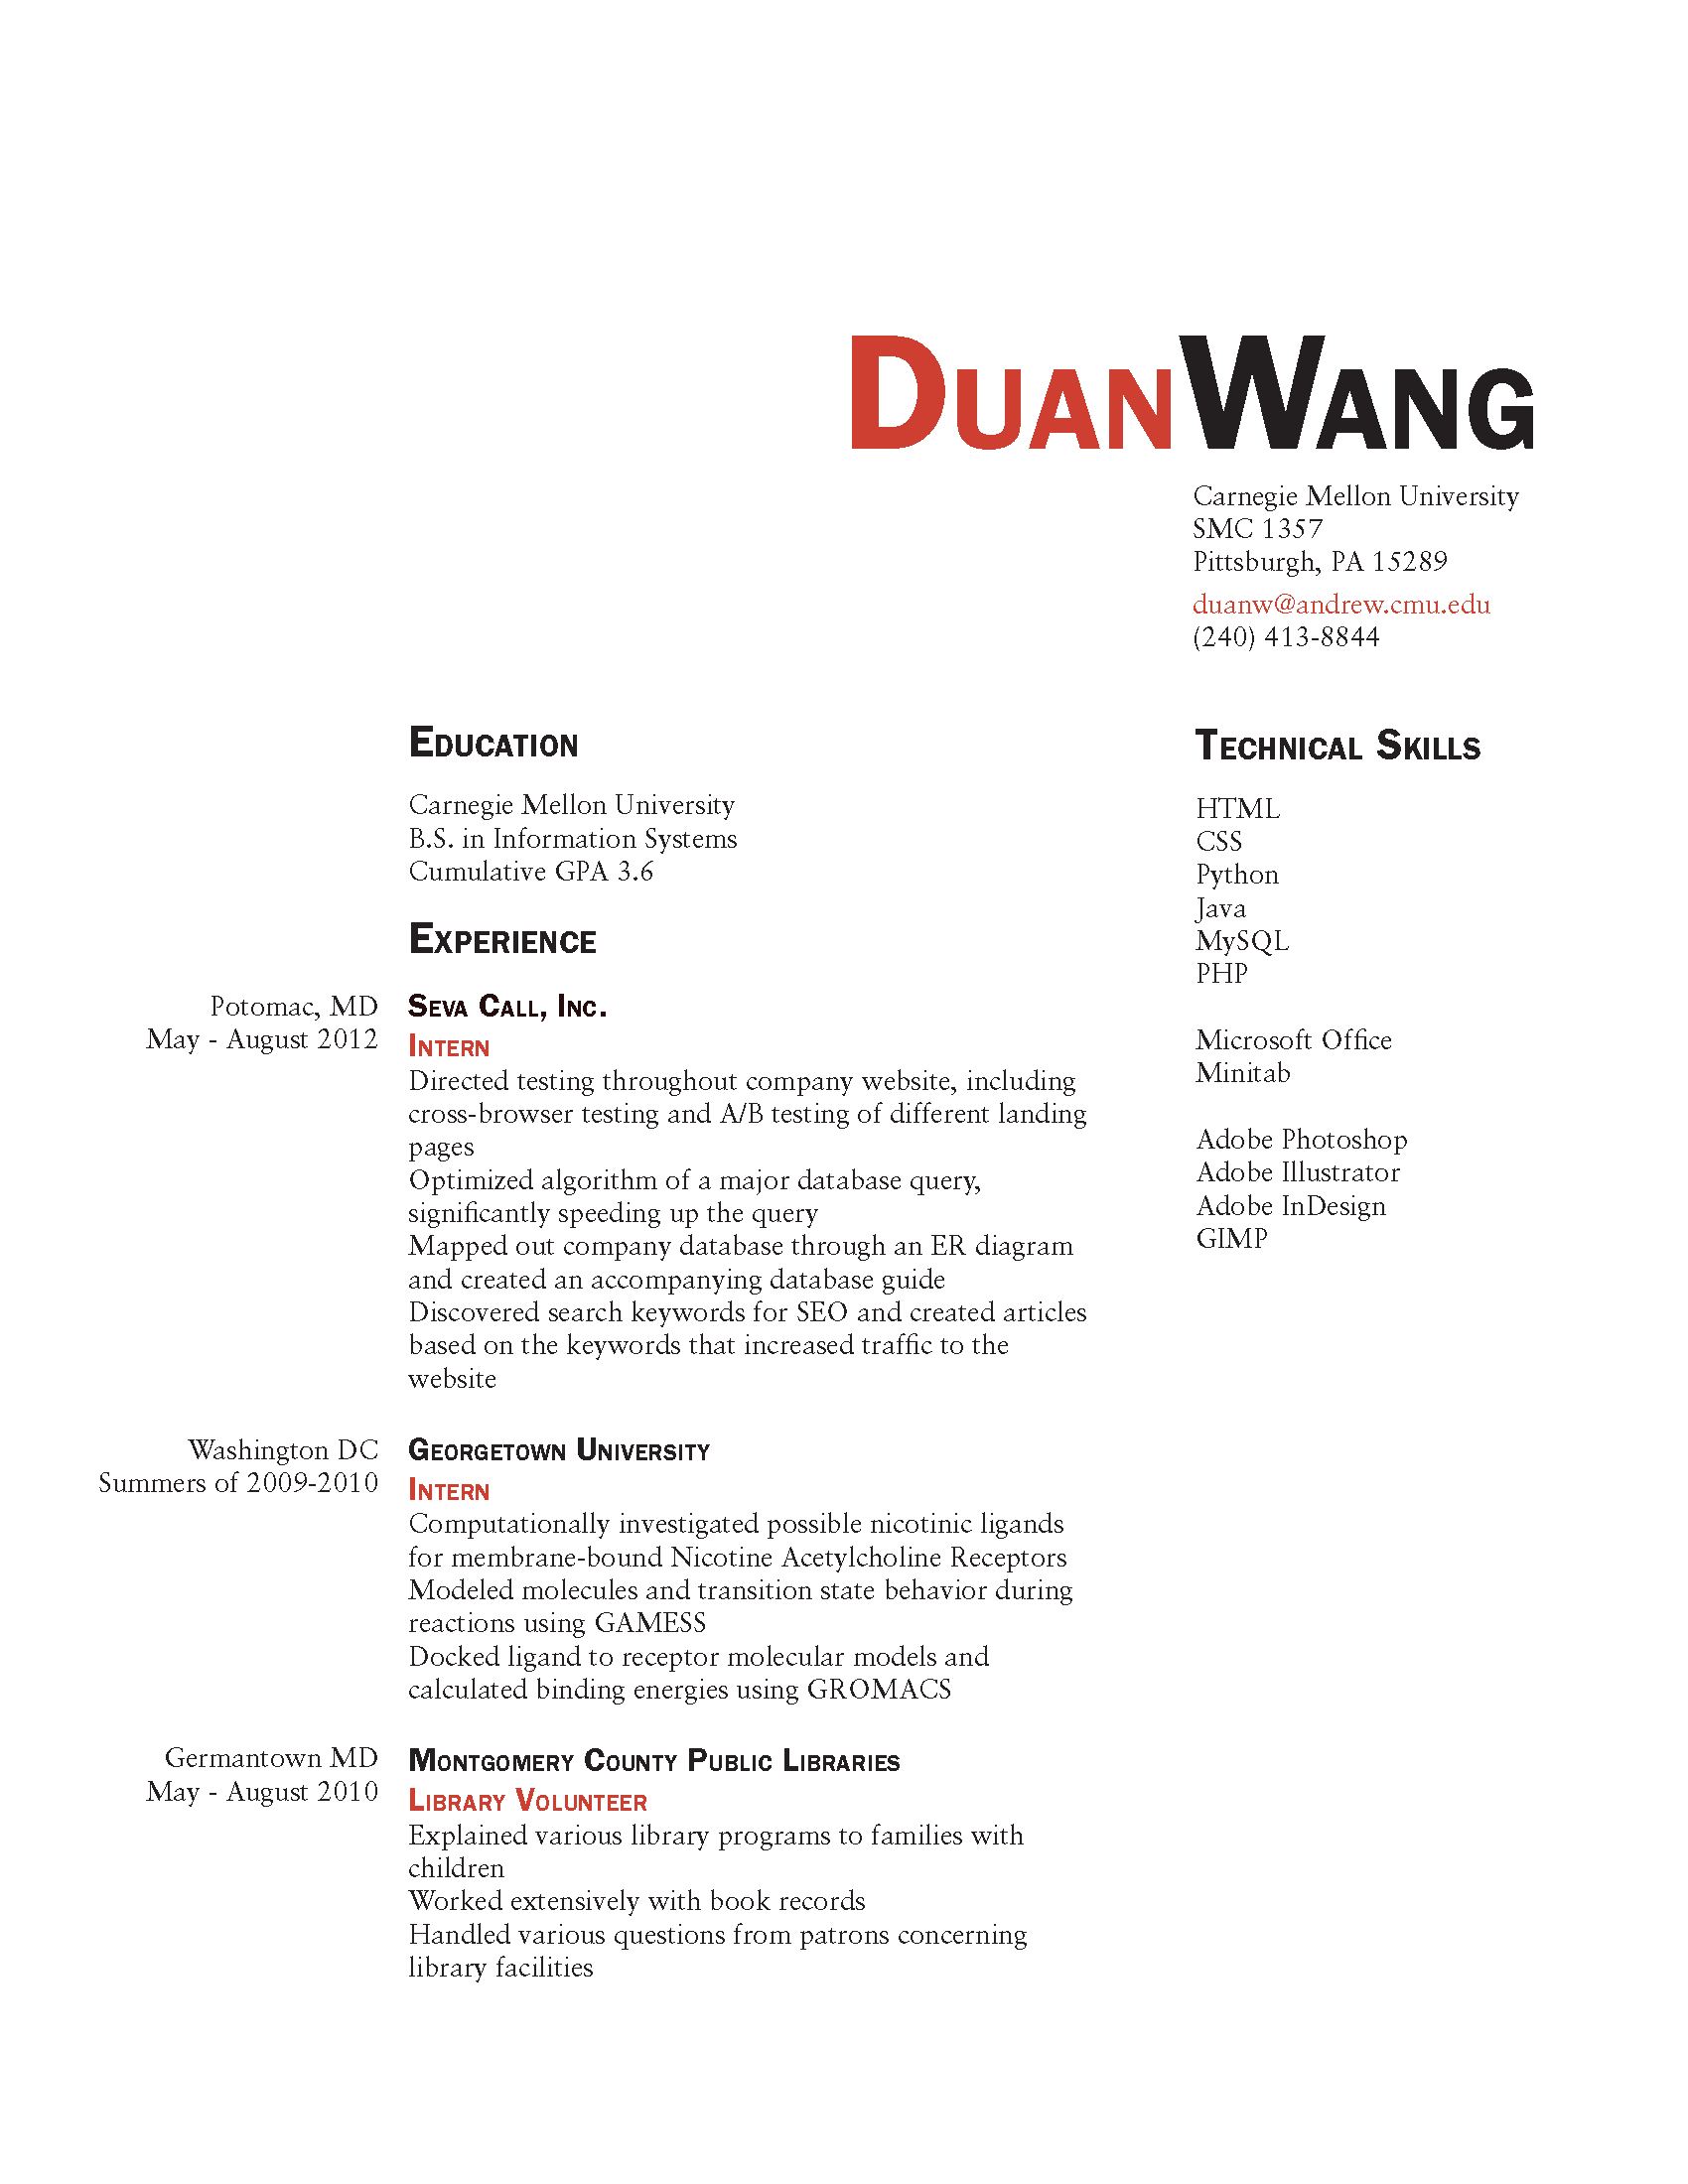 Two Page Resume Header Resume And Business Card Final Duan Wang